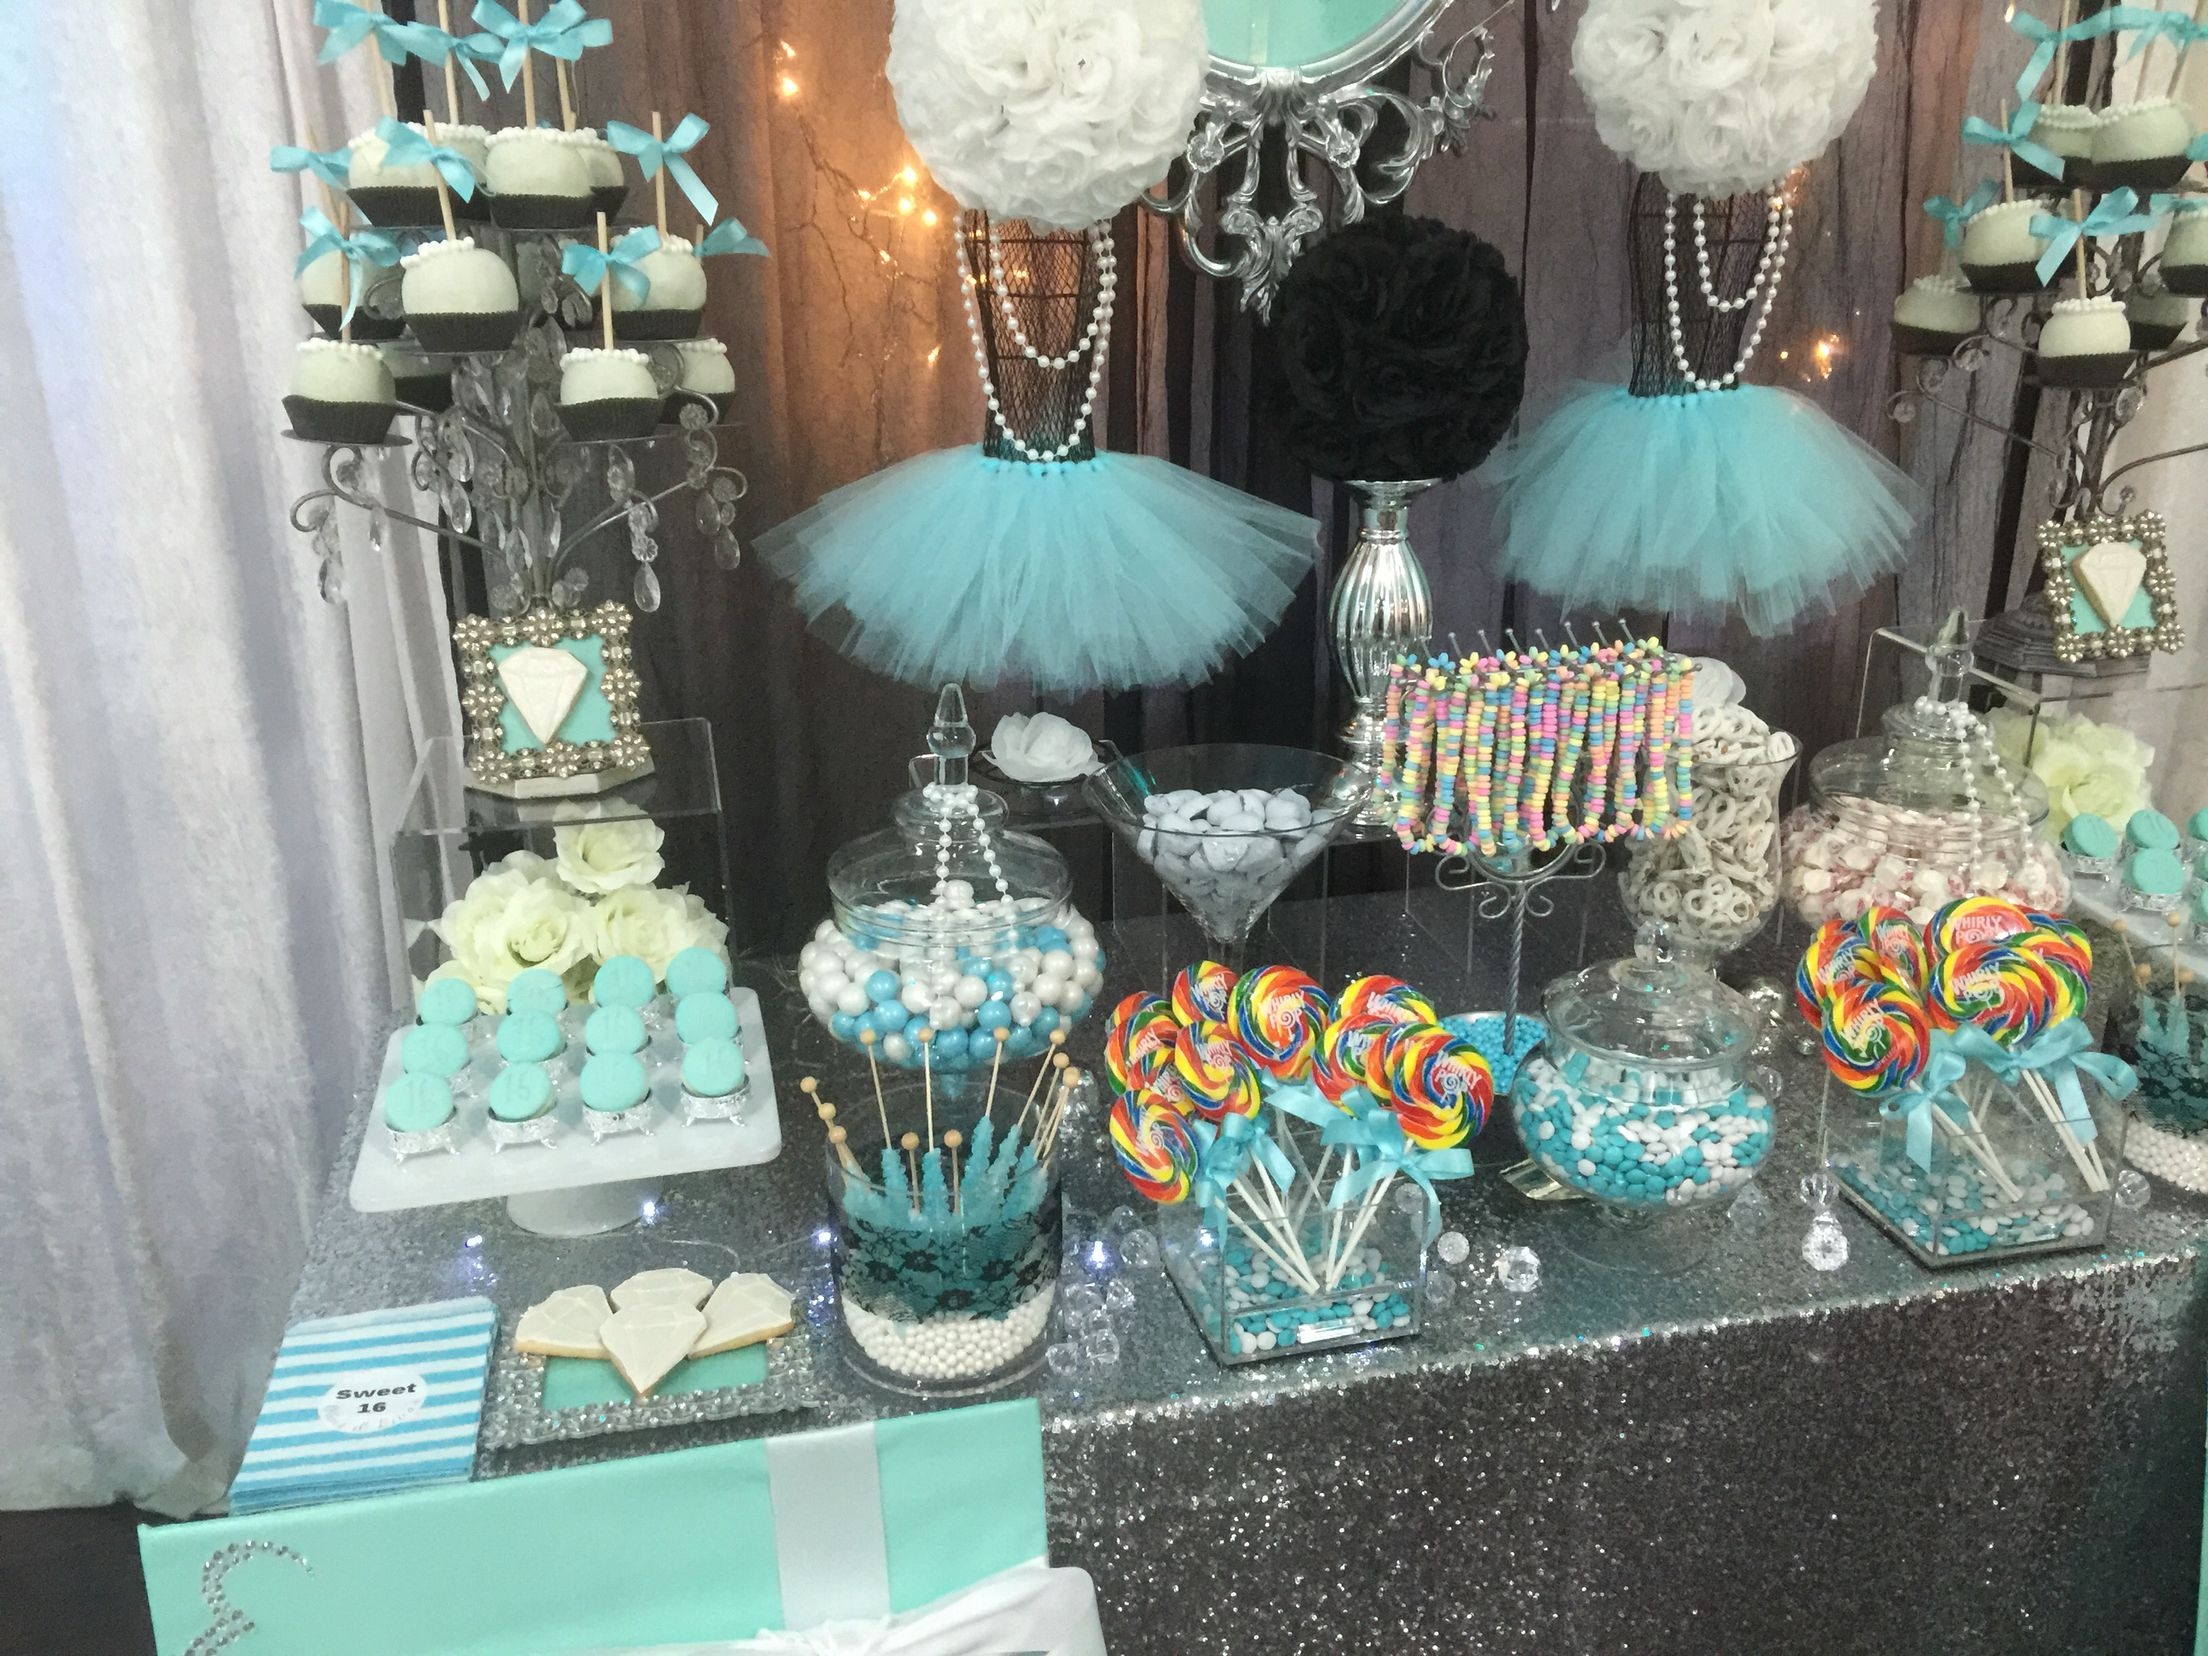 Turquoise White And Black With Silver Accents Candy Buffet With Silver Dusted White Ganache Macaroons And W Sweet 16 Candy Buffet Sweet 16 Candy Candy Buffet